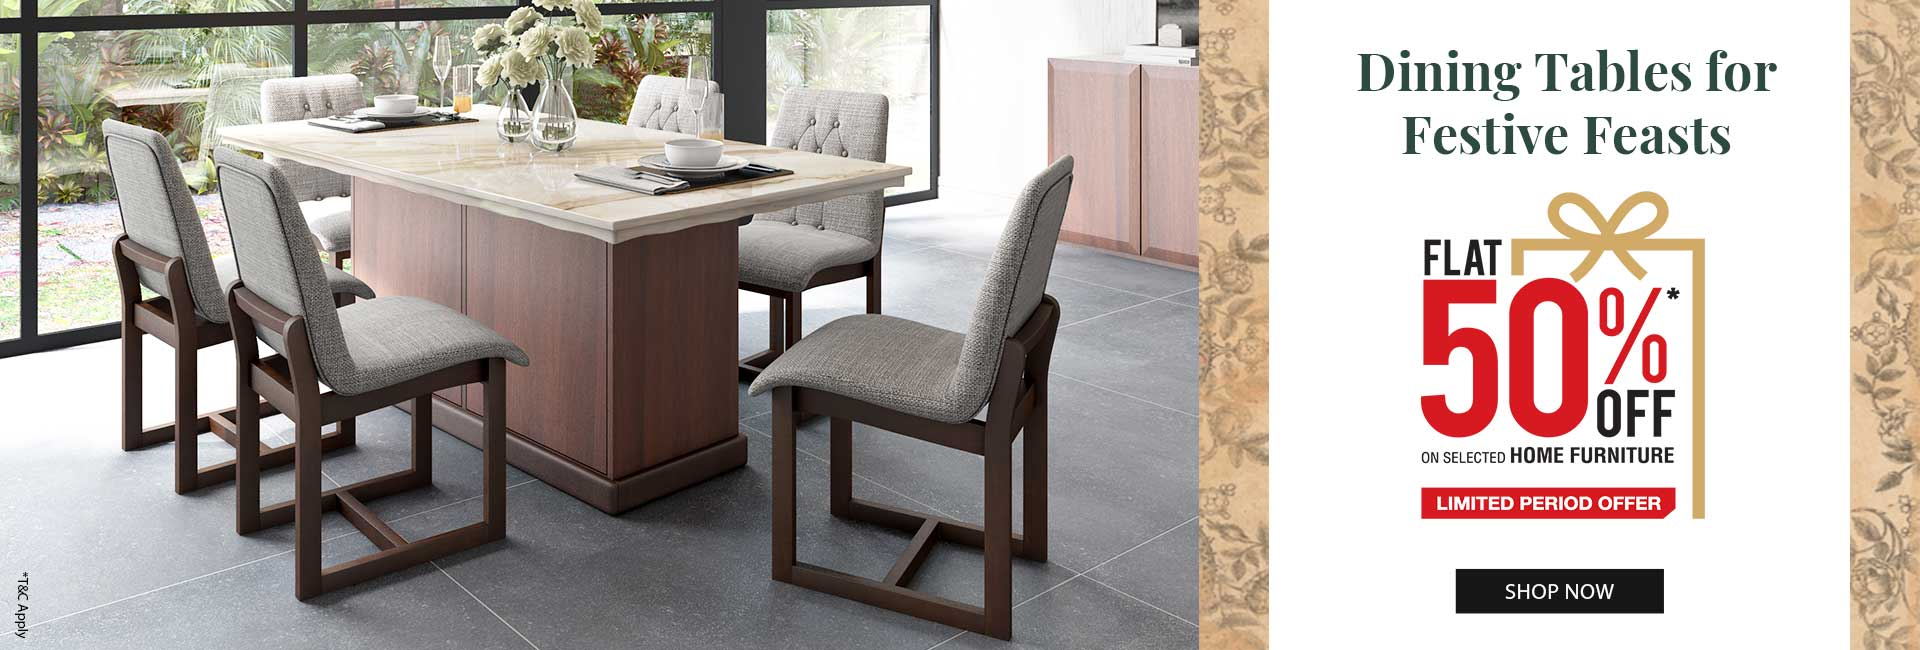 Flat 50% Off on Selected Home Furniture